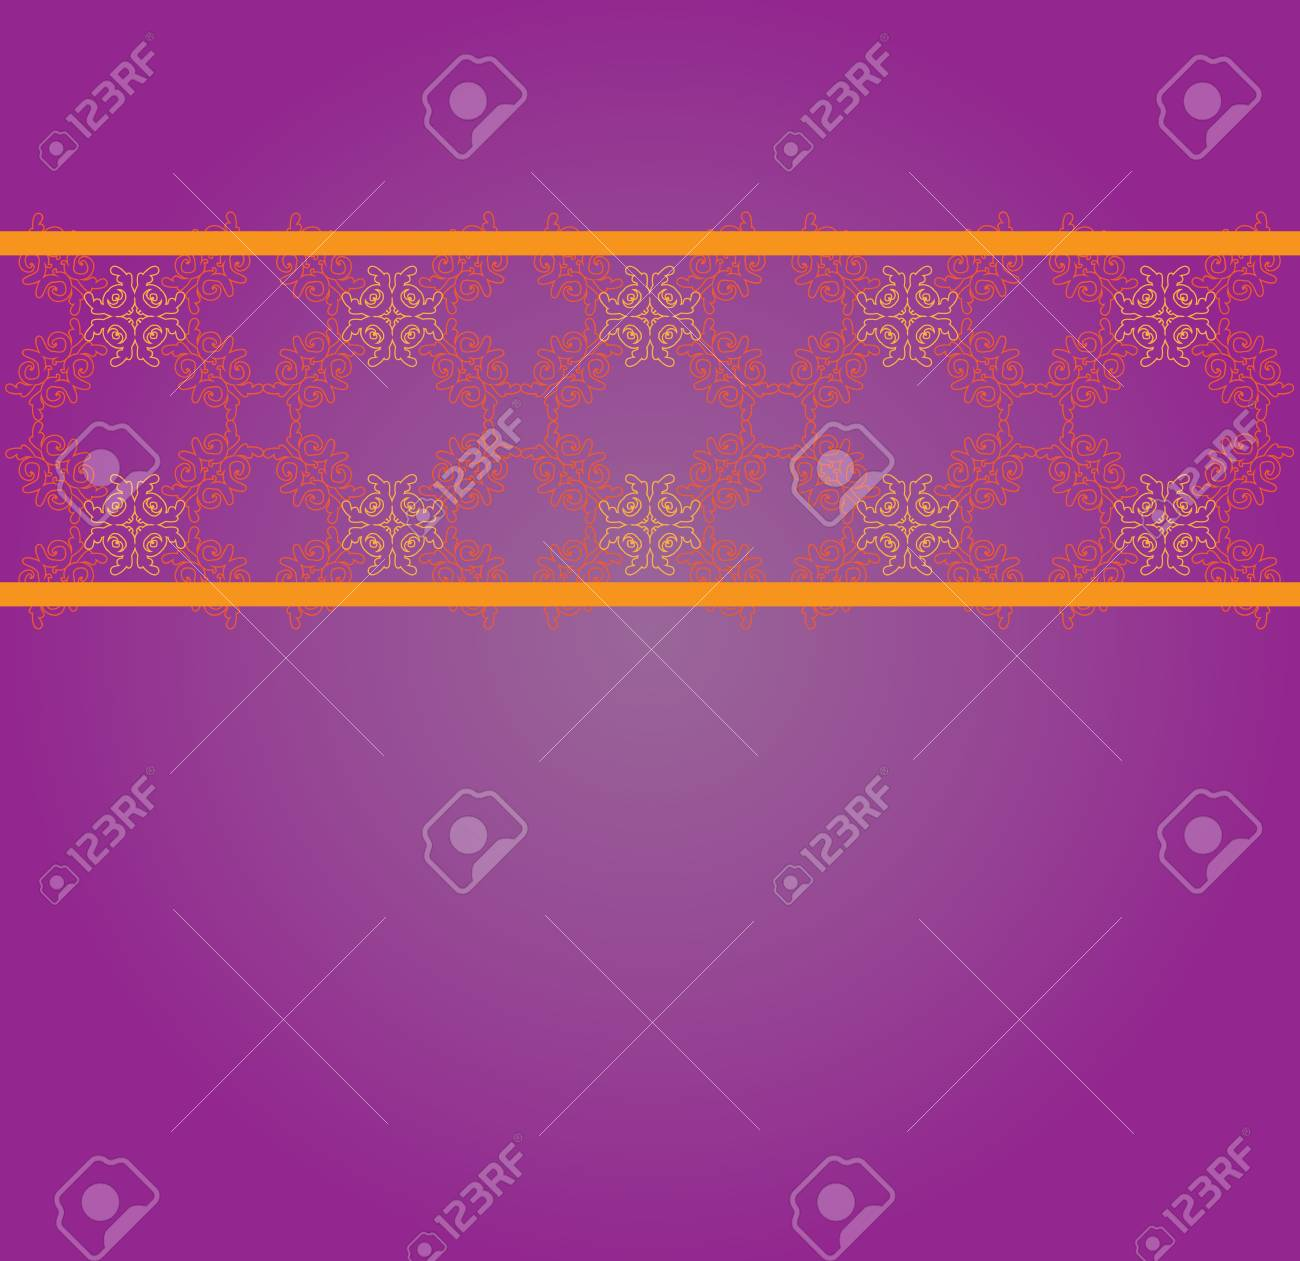 Illustration of abstract floral lace pattern texture background. Stock Vector - 17259048